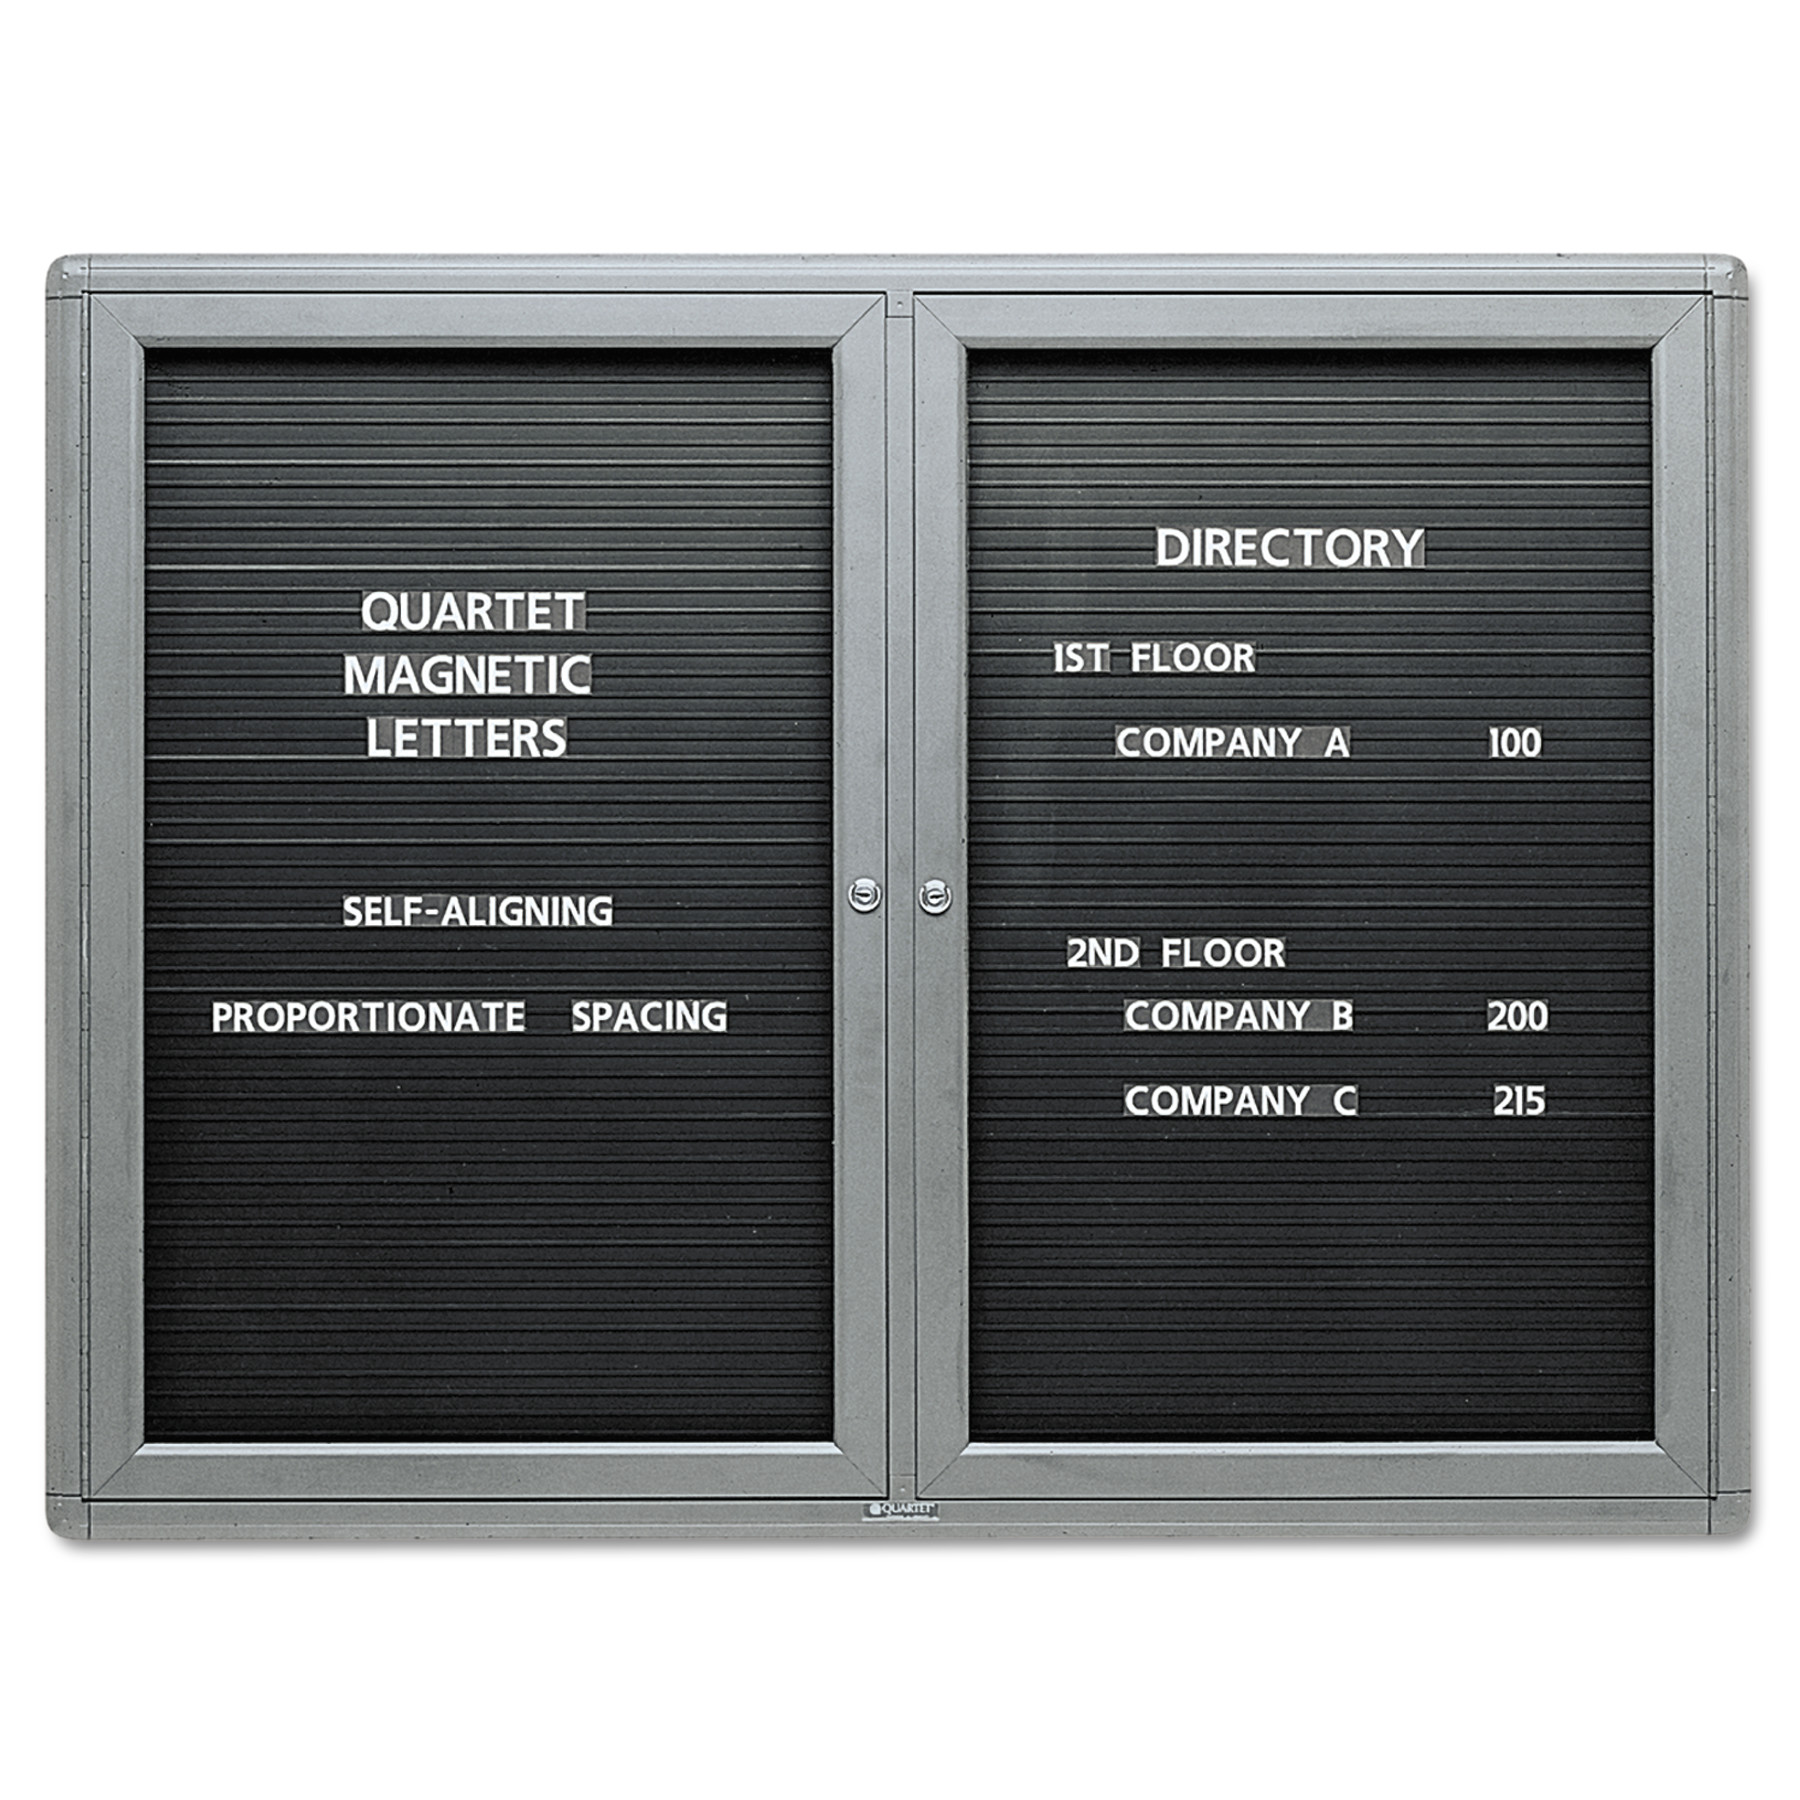 Quartet Enclosed Magnetic Directory, 48 x 36, Black Surface, Graphite Aluminum Frame -QRT2964LM